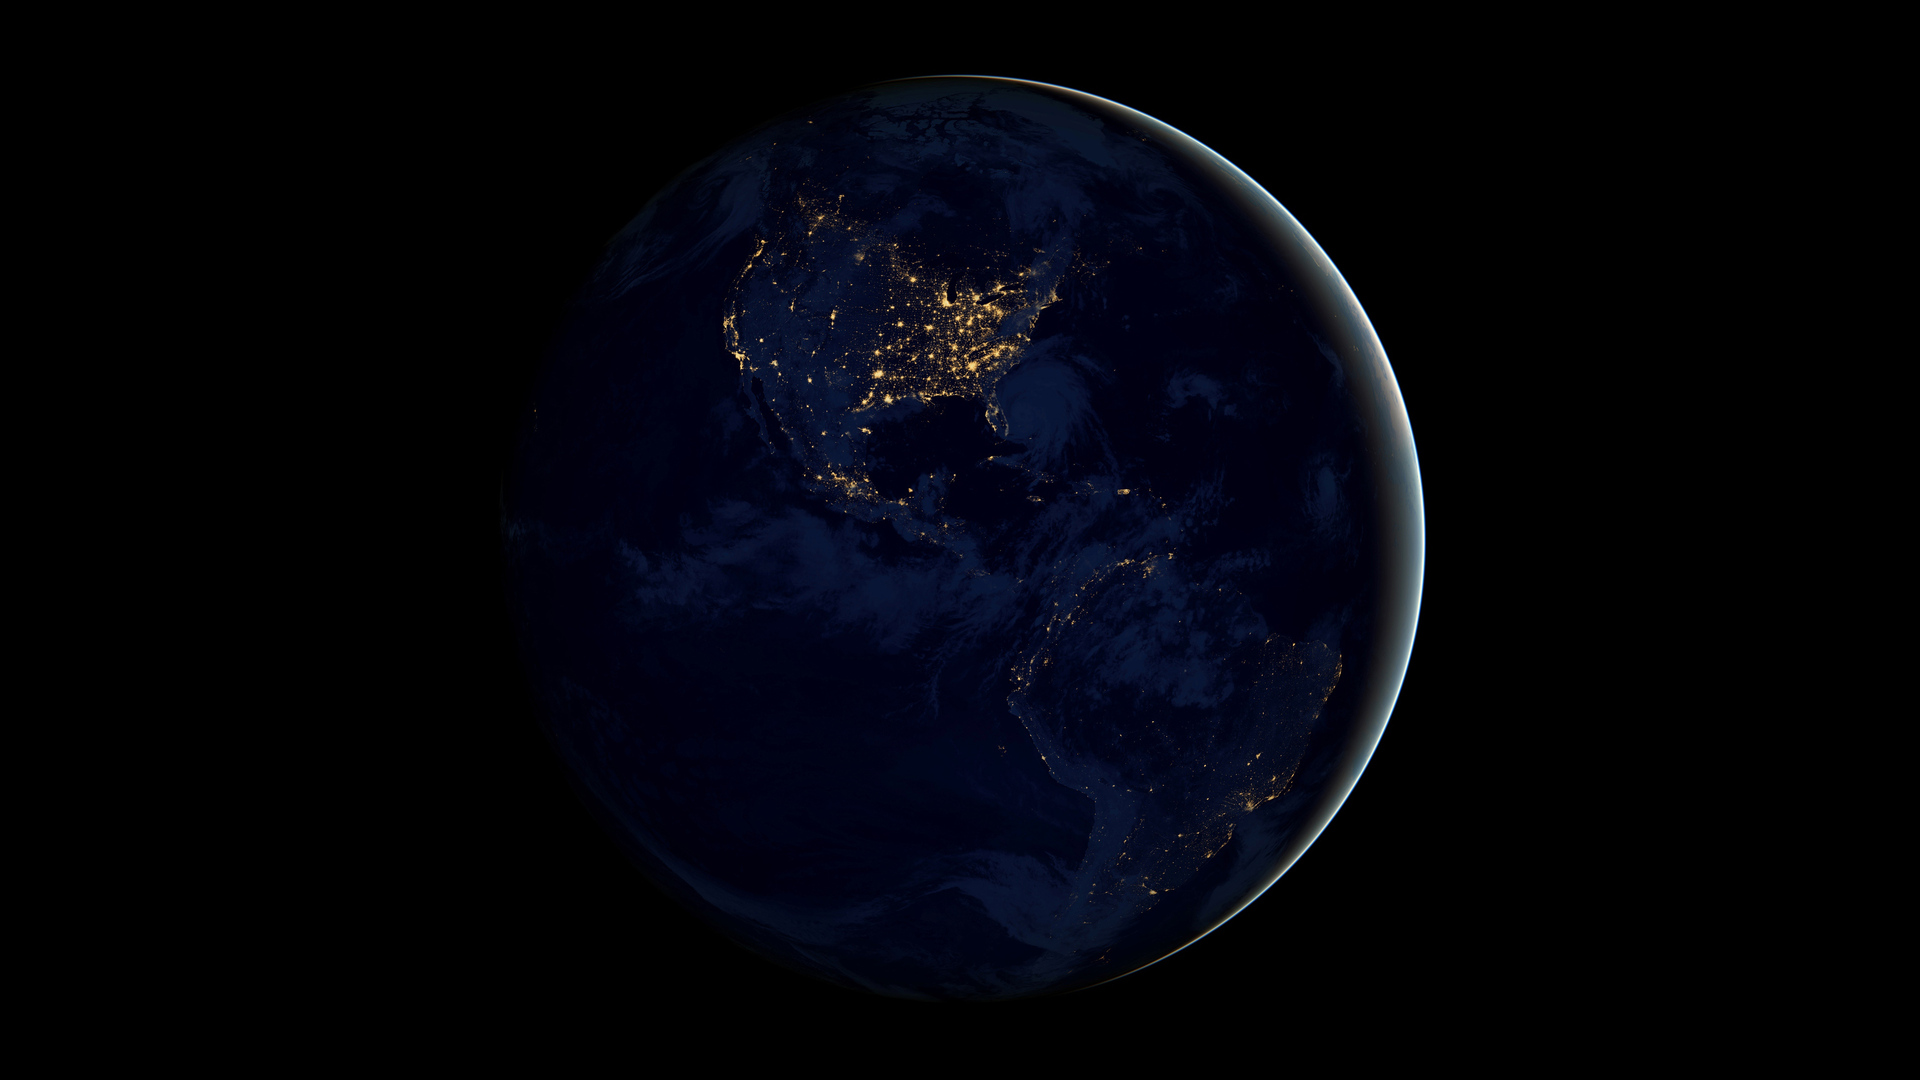 1920x1080 Earth From Space 4k Laptop Full Hd 1080p Hd 4k Wallpapers